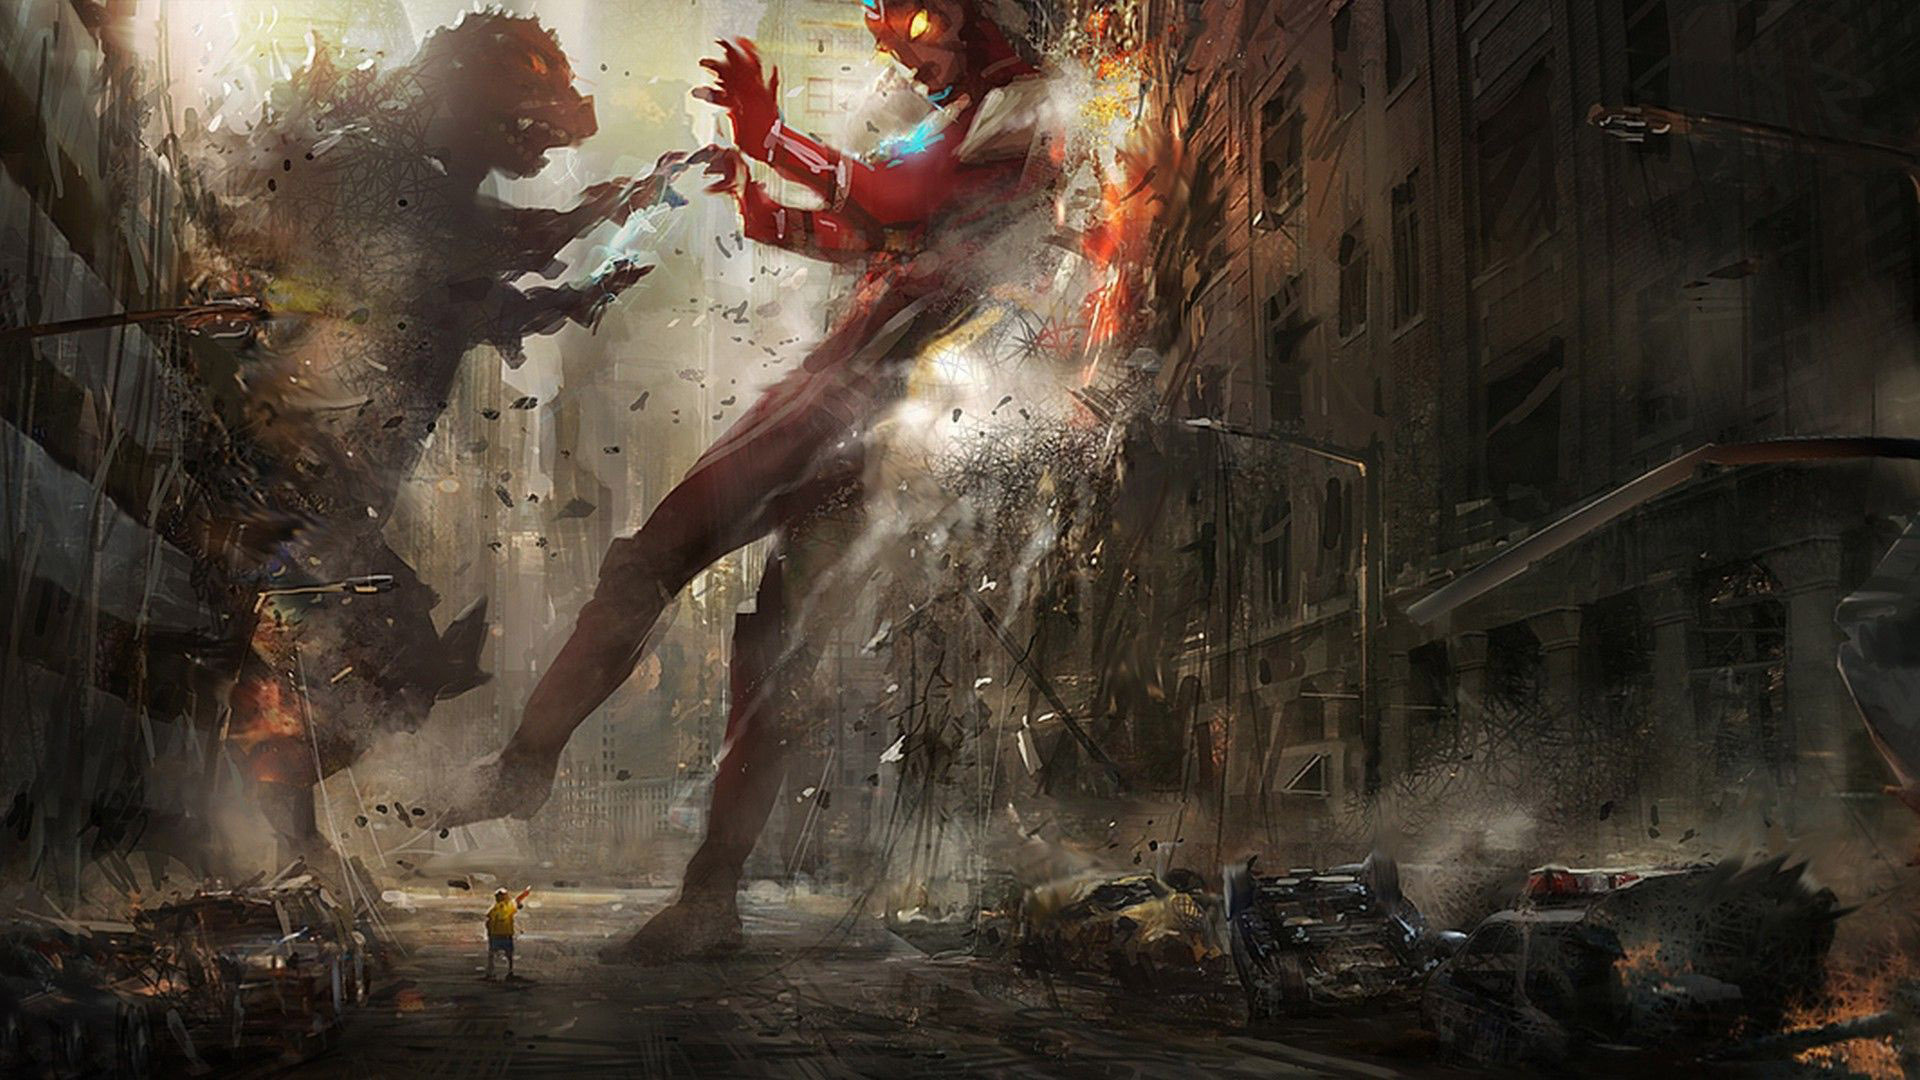 Iron Man vs Godzilla wallpaper   1070186 1920x1080